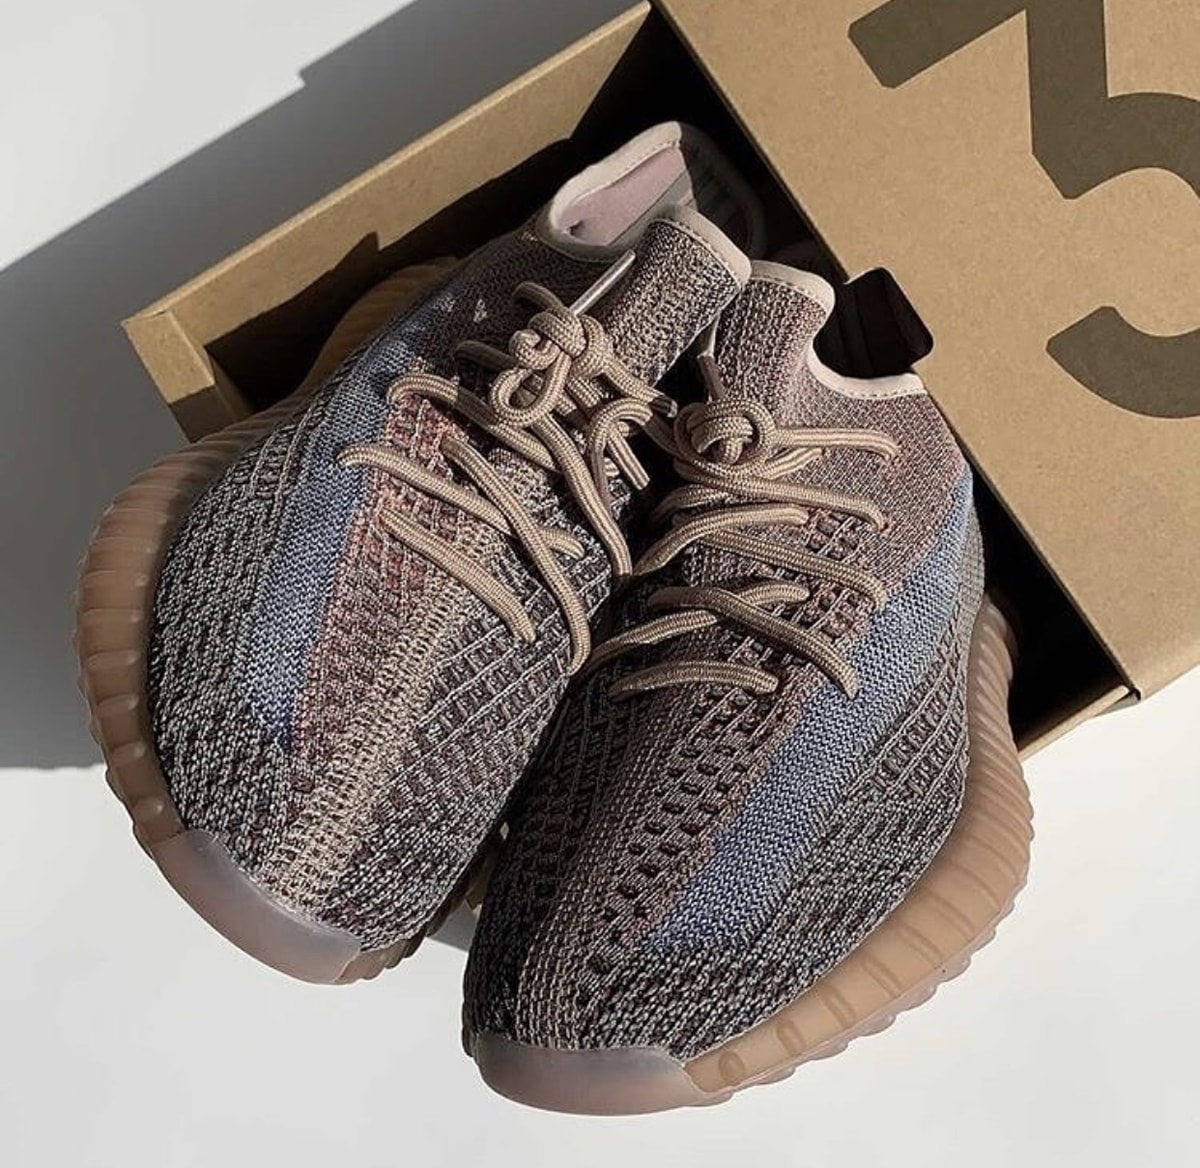 Yeezy Boost 350 V2 Natural Outfit